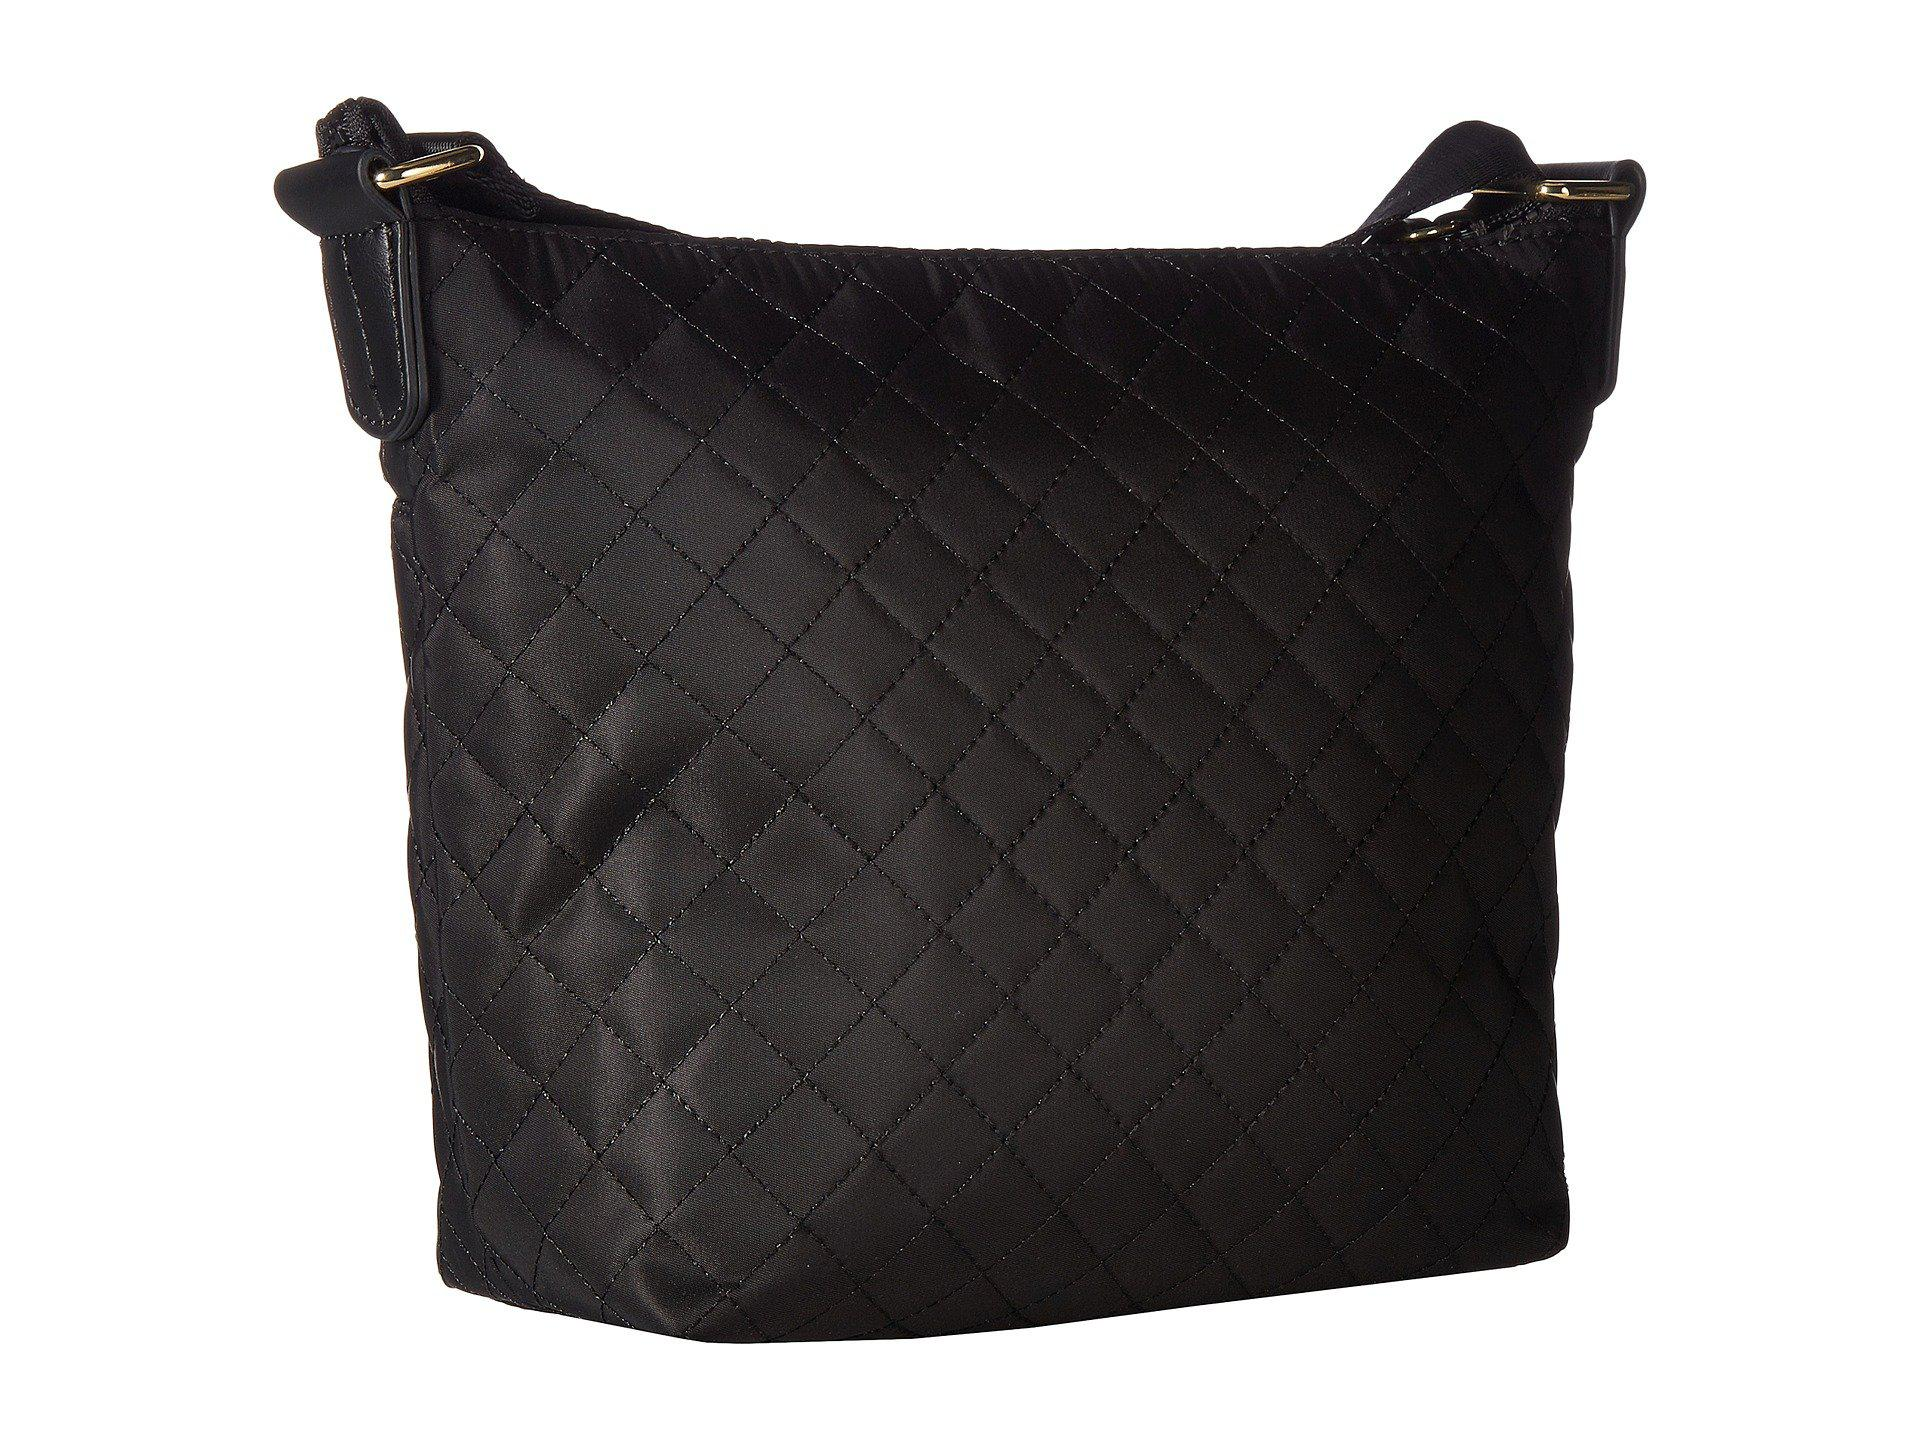 aa91e73e984 Lyst - Tommy Hilfiger Nylon Patch Mini Convertible Quilt Hobo in Black